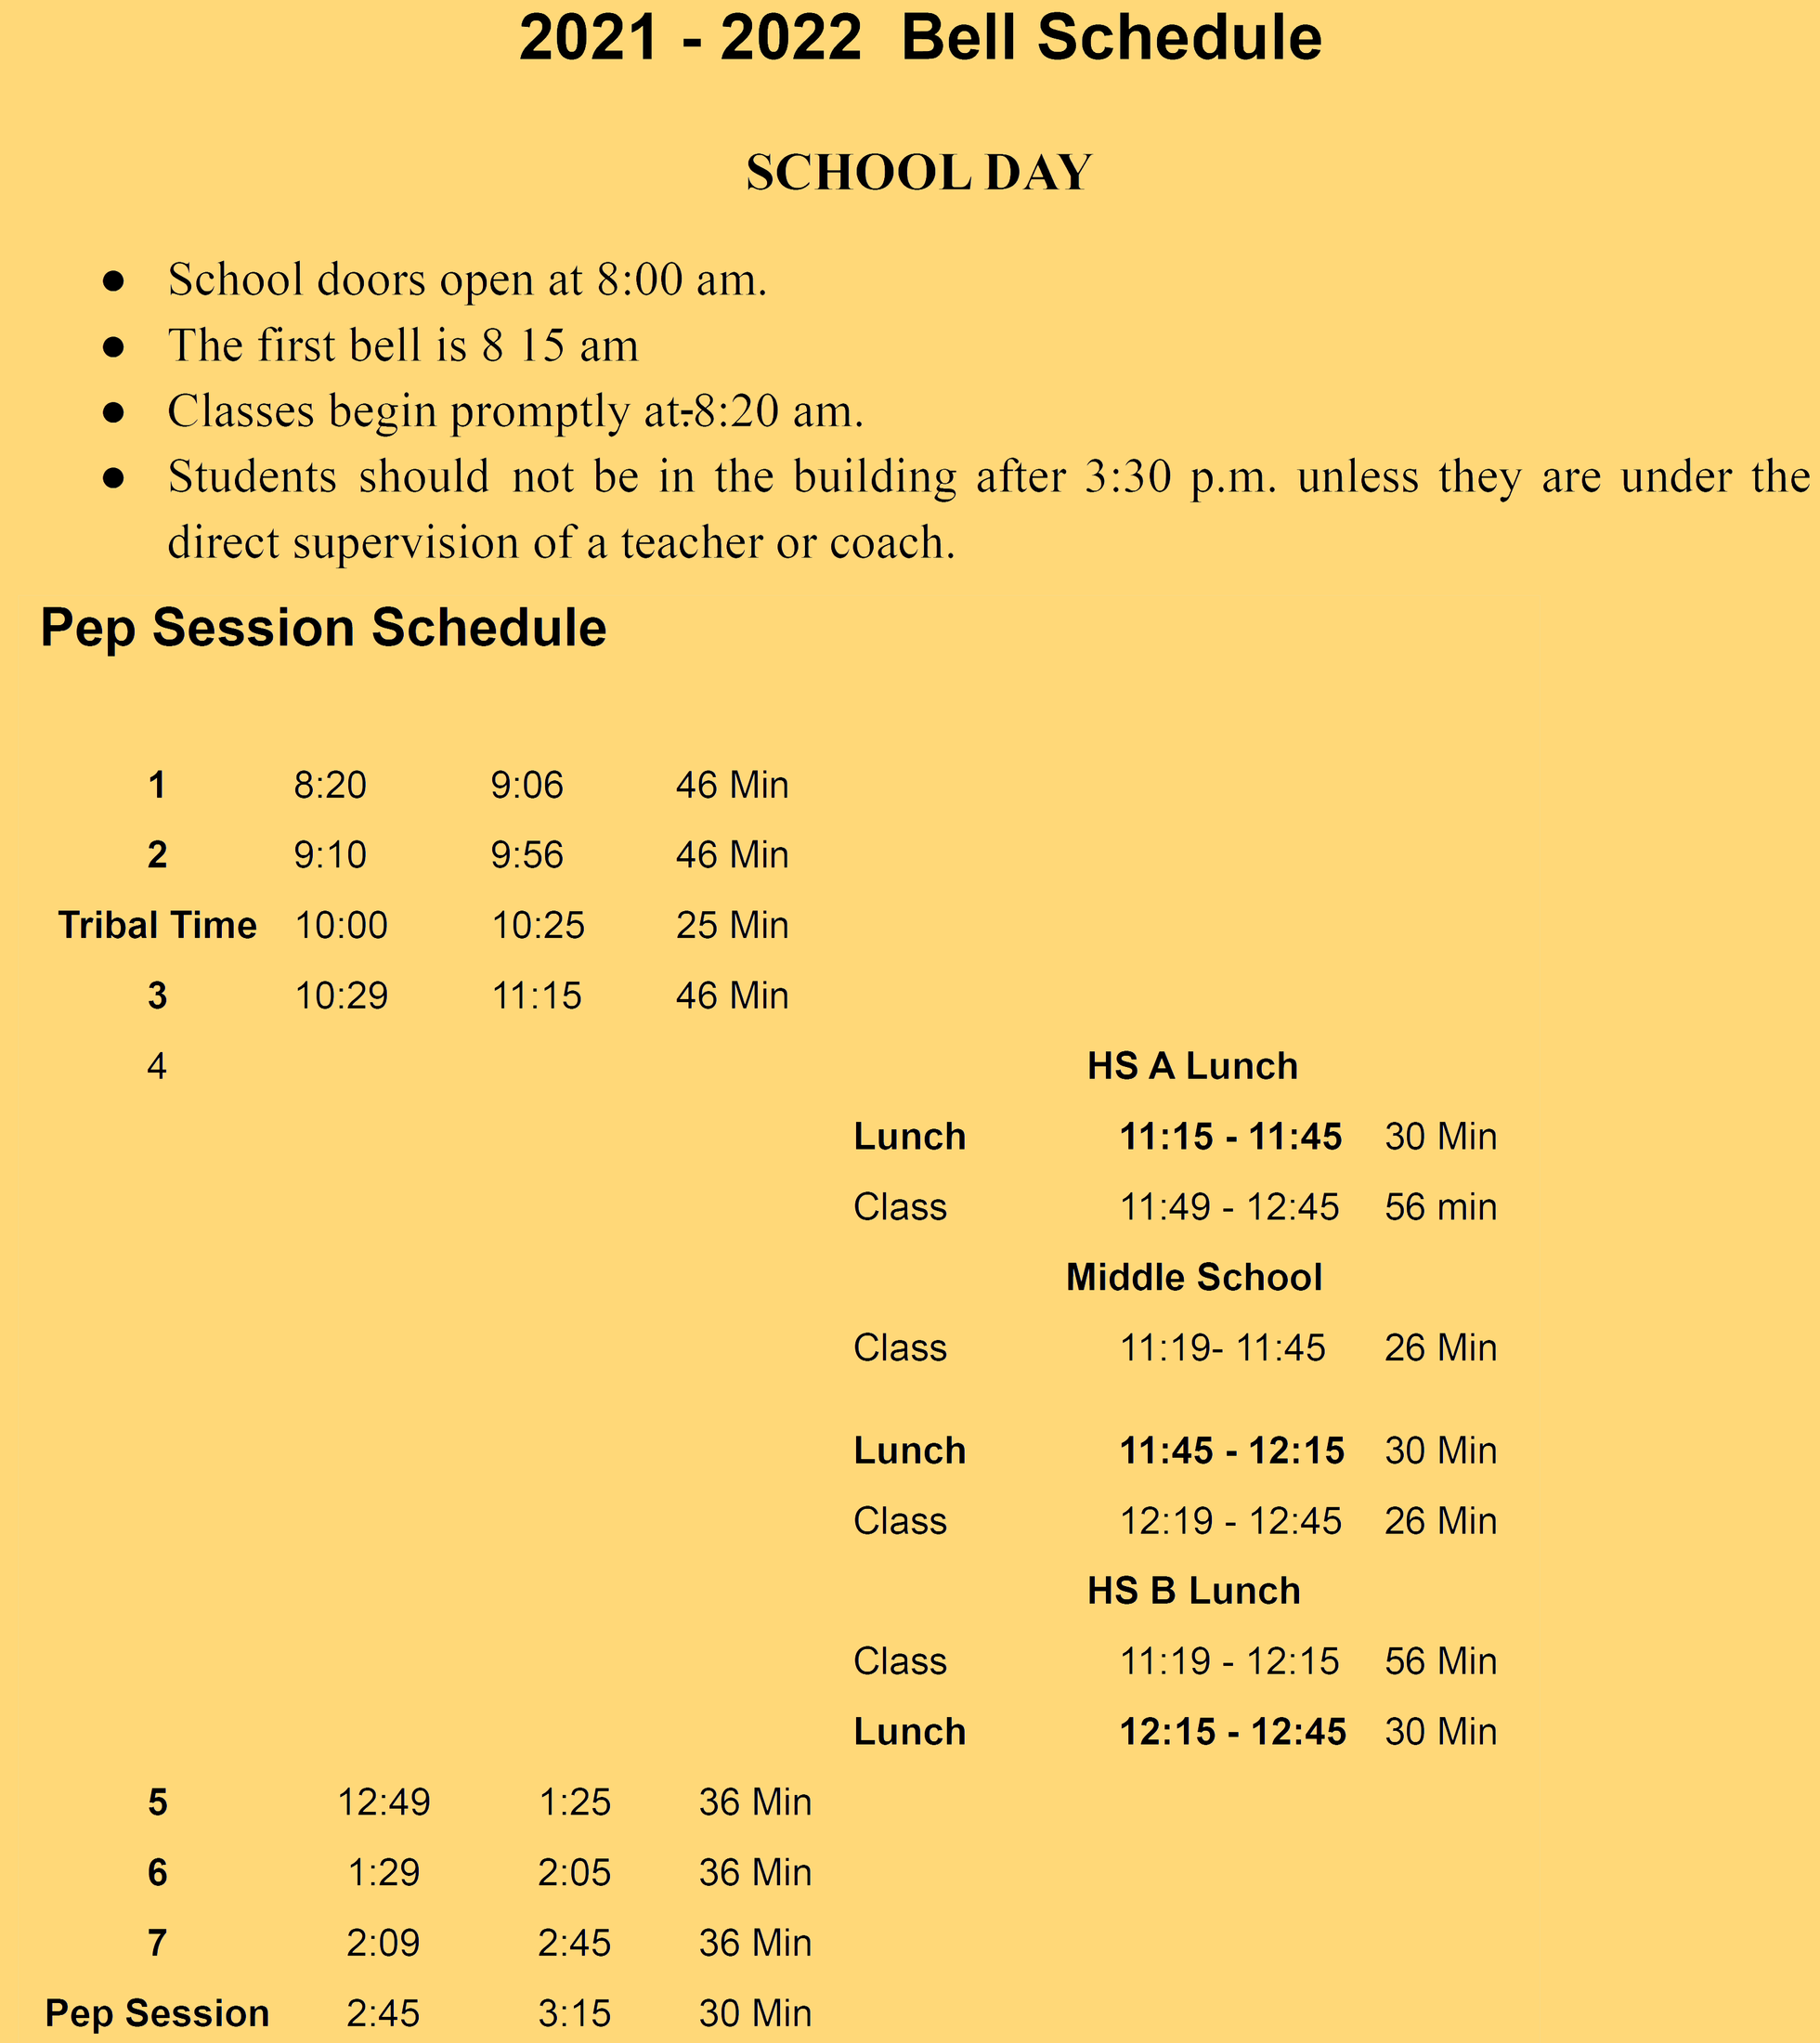 UCJSHS Pep Session Bell Schedule